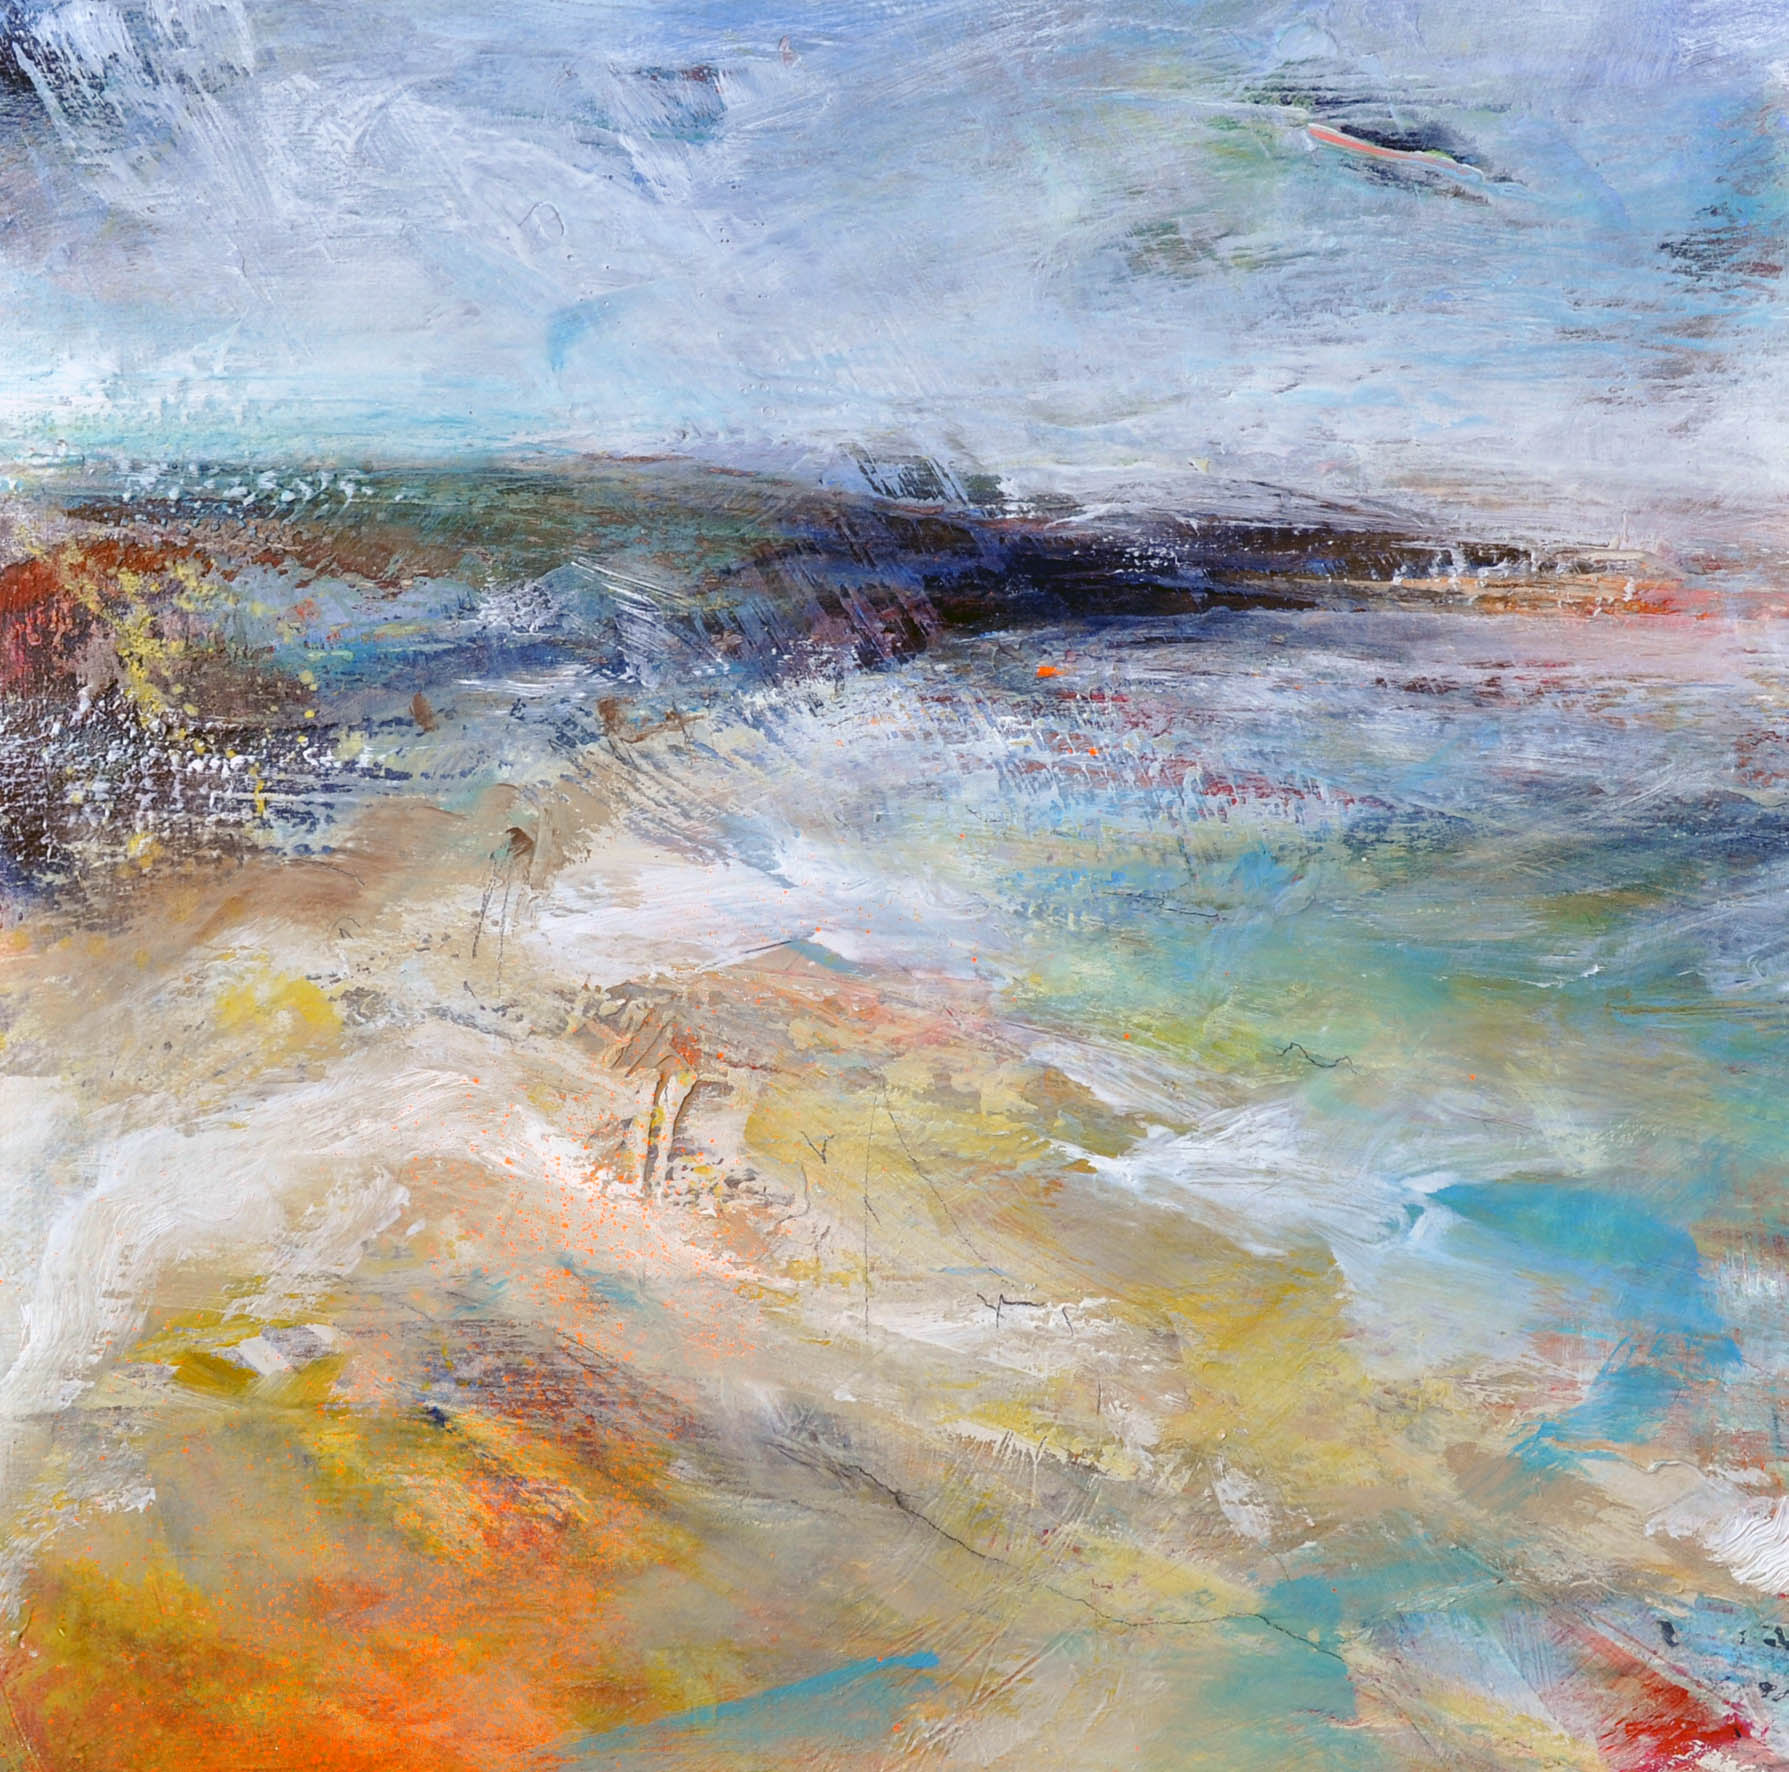 "<span class=""link fancybox-details-link""><a href=""/artists/90-freya-horsley/works/7036-freya-horsley-strand-2020/"">View Detail Page</a></span><div class=""artist""><strong>Freya Horsley</strong></div> <div class=""title""><em>Strand</em>, 2020 </div> <div class=""medium"">mixed media on board</div> <div class=""dimensions"">h. 40 x w. 40 cm </div><div class=""copyright_line"">Ownart: £65 x 10 Months, 0% APR</div>"